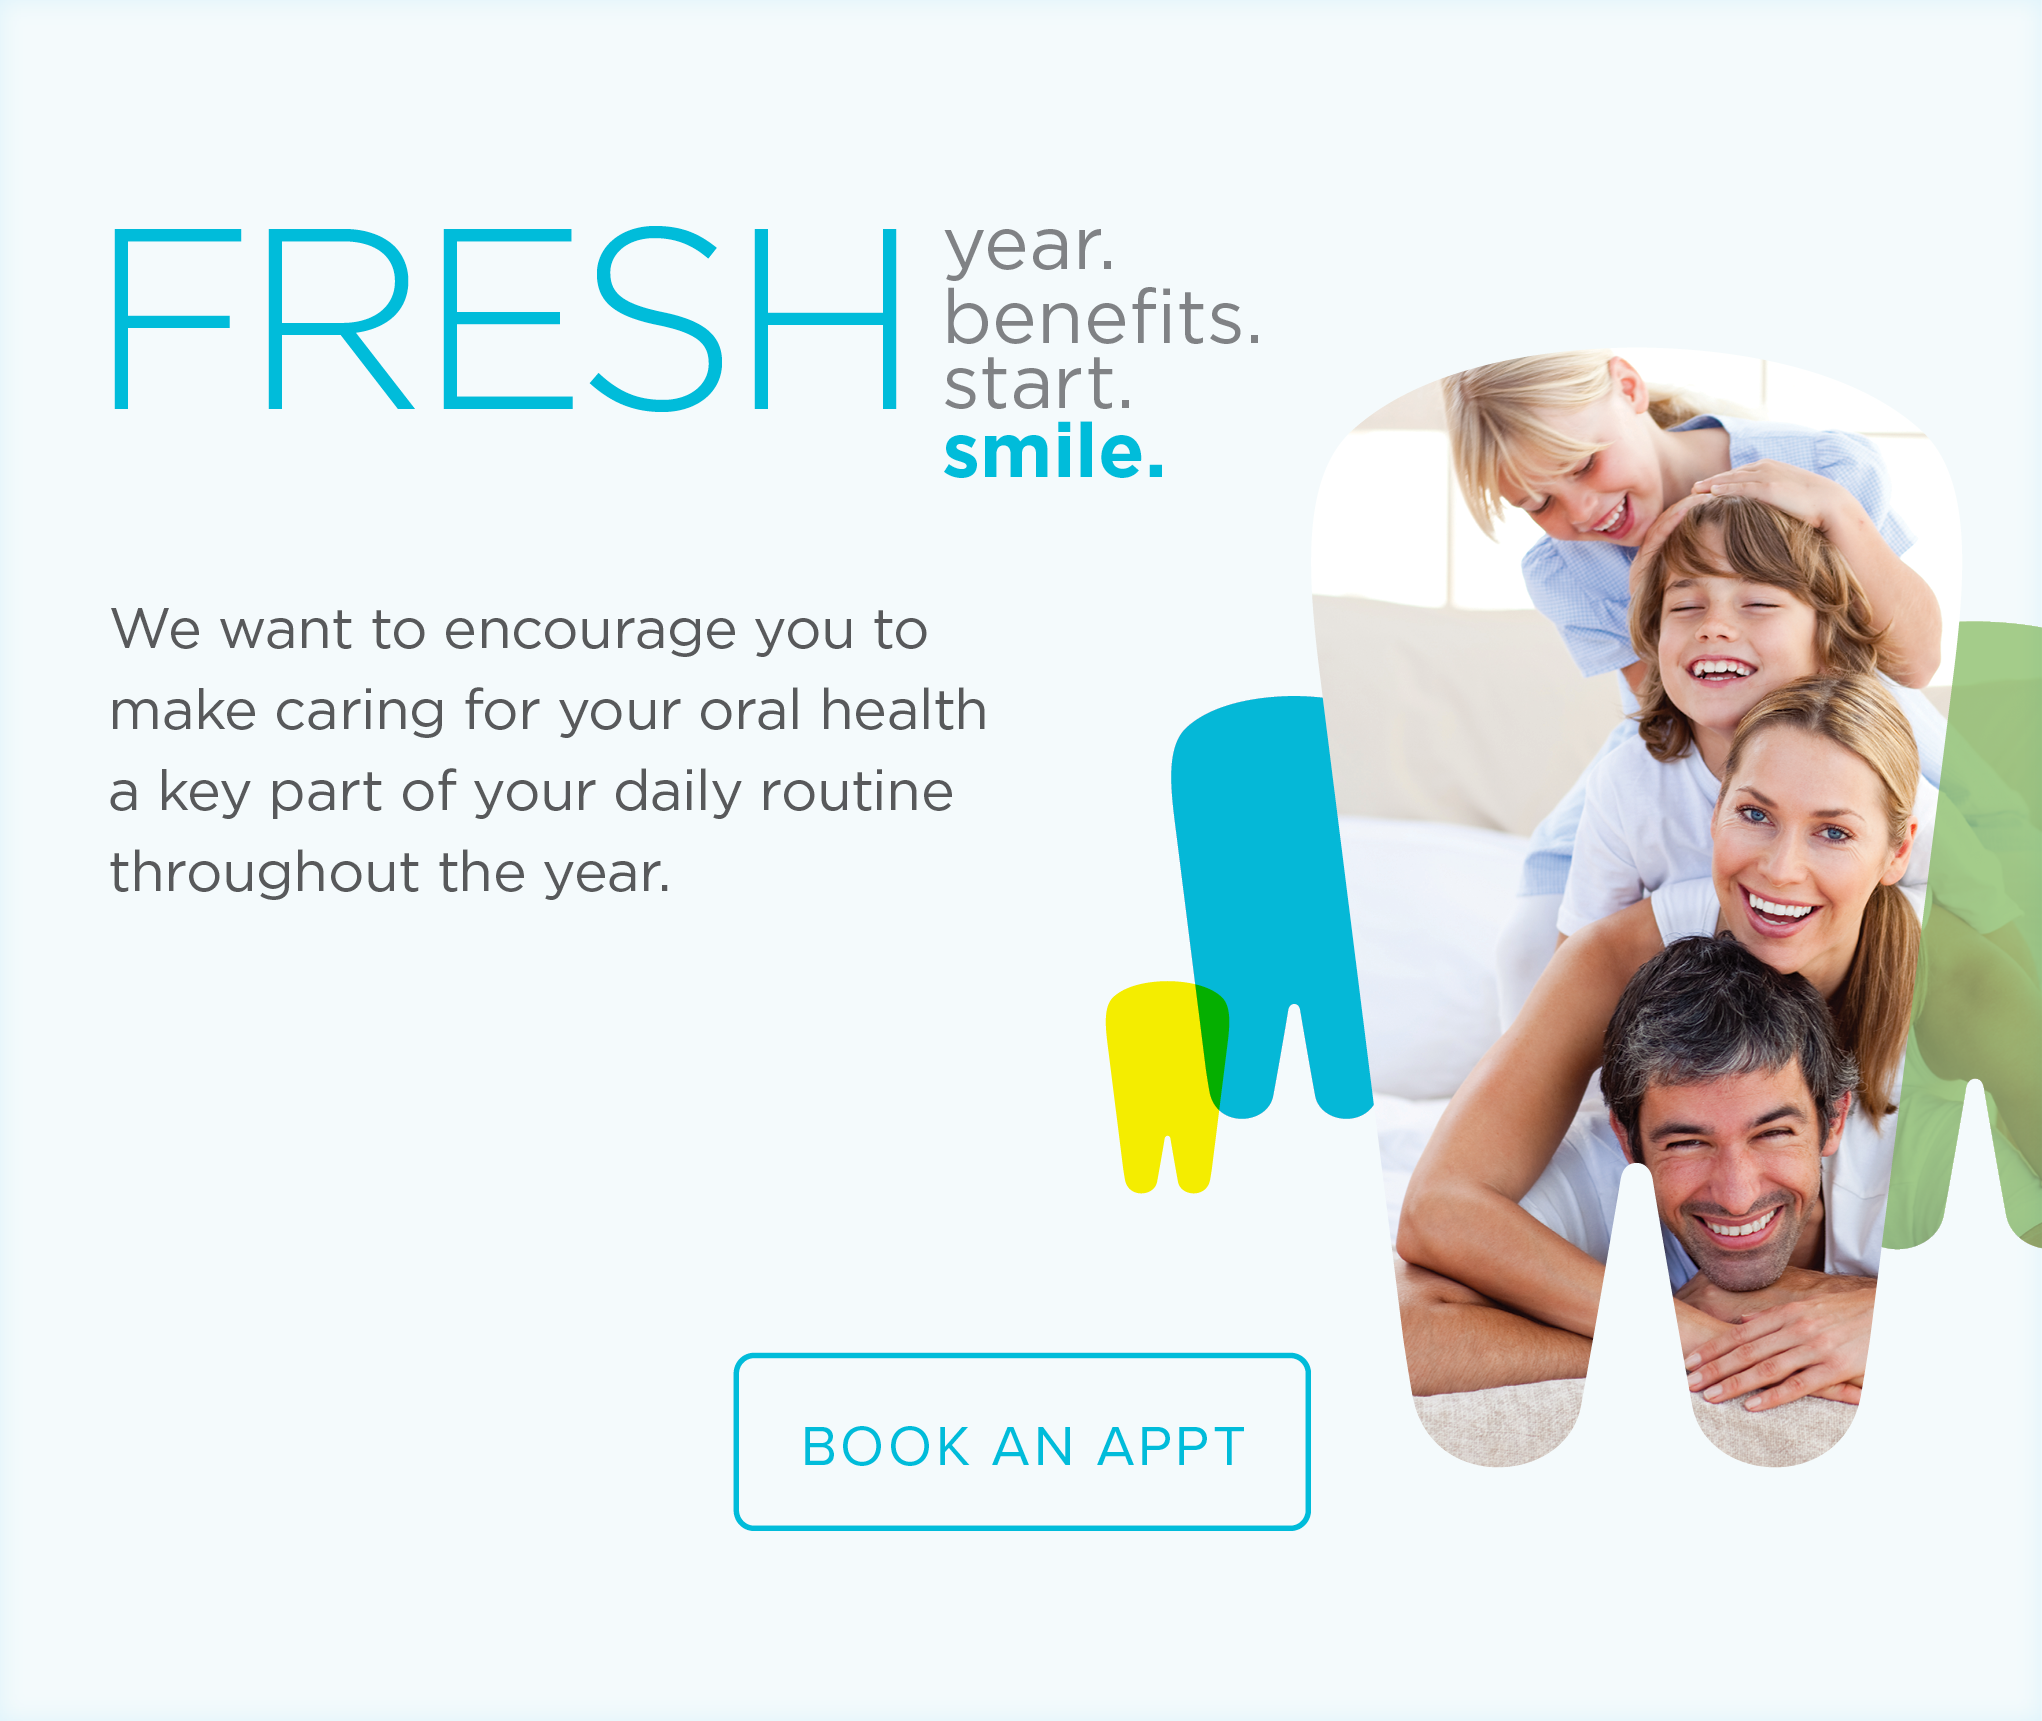 Bastrop Modern Dentistry - Make the Most of Your Benefits